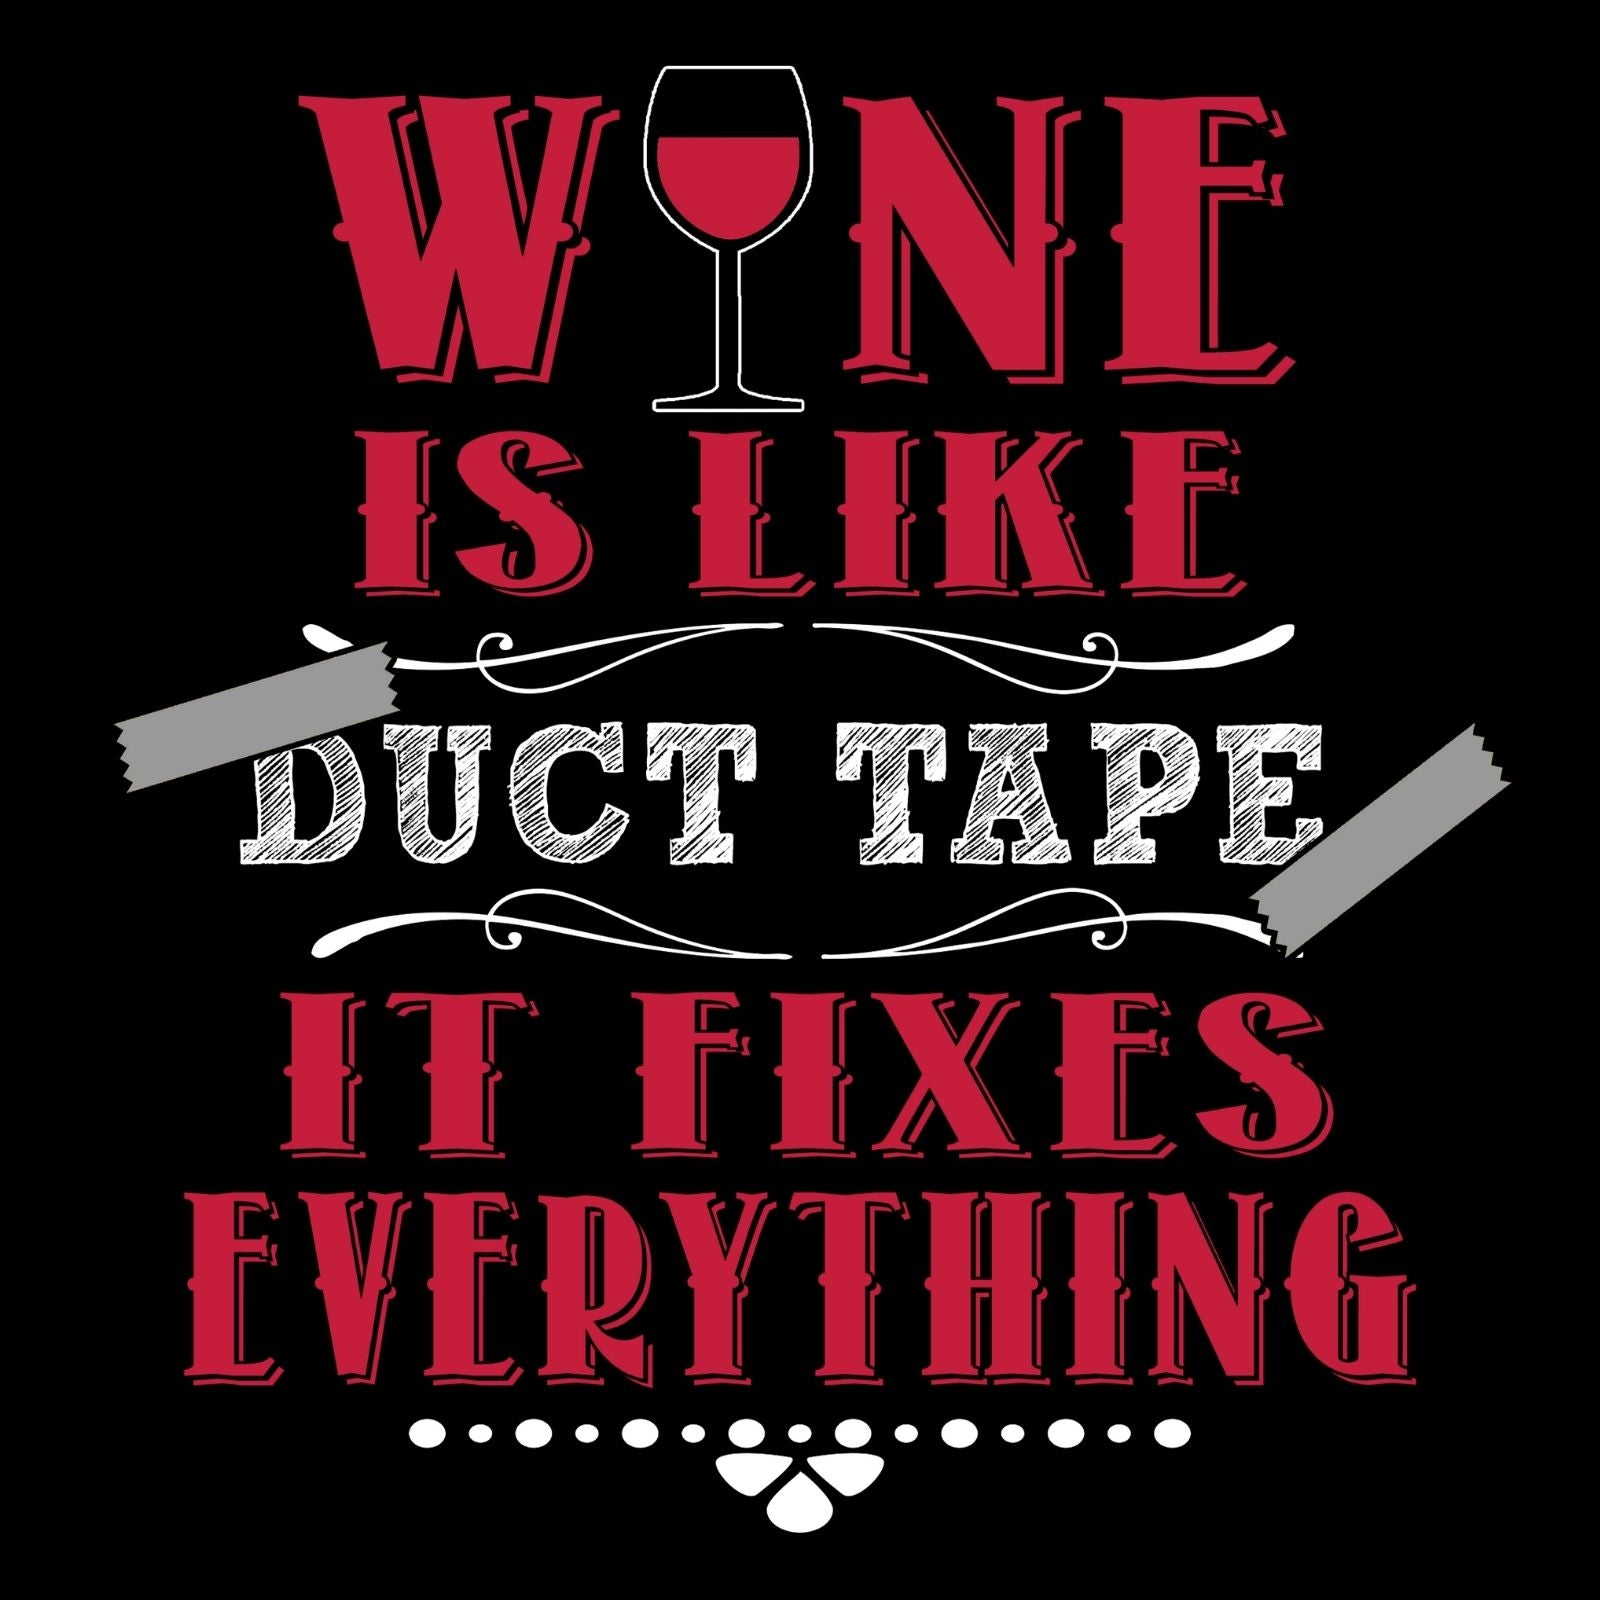 Wine Is Like Duct Tape It Fixes Everything - Bastard Graphics